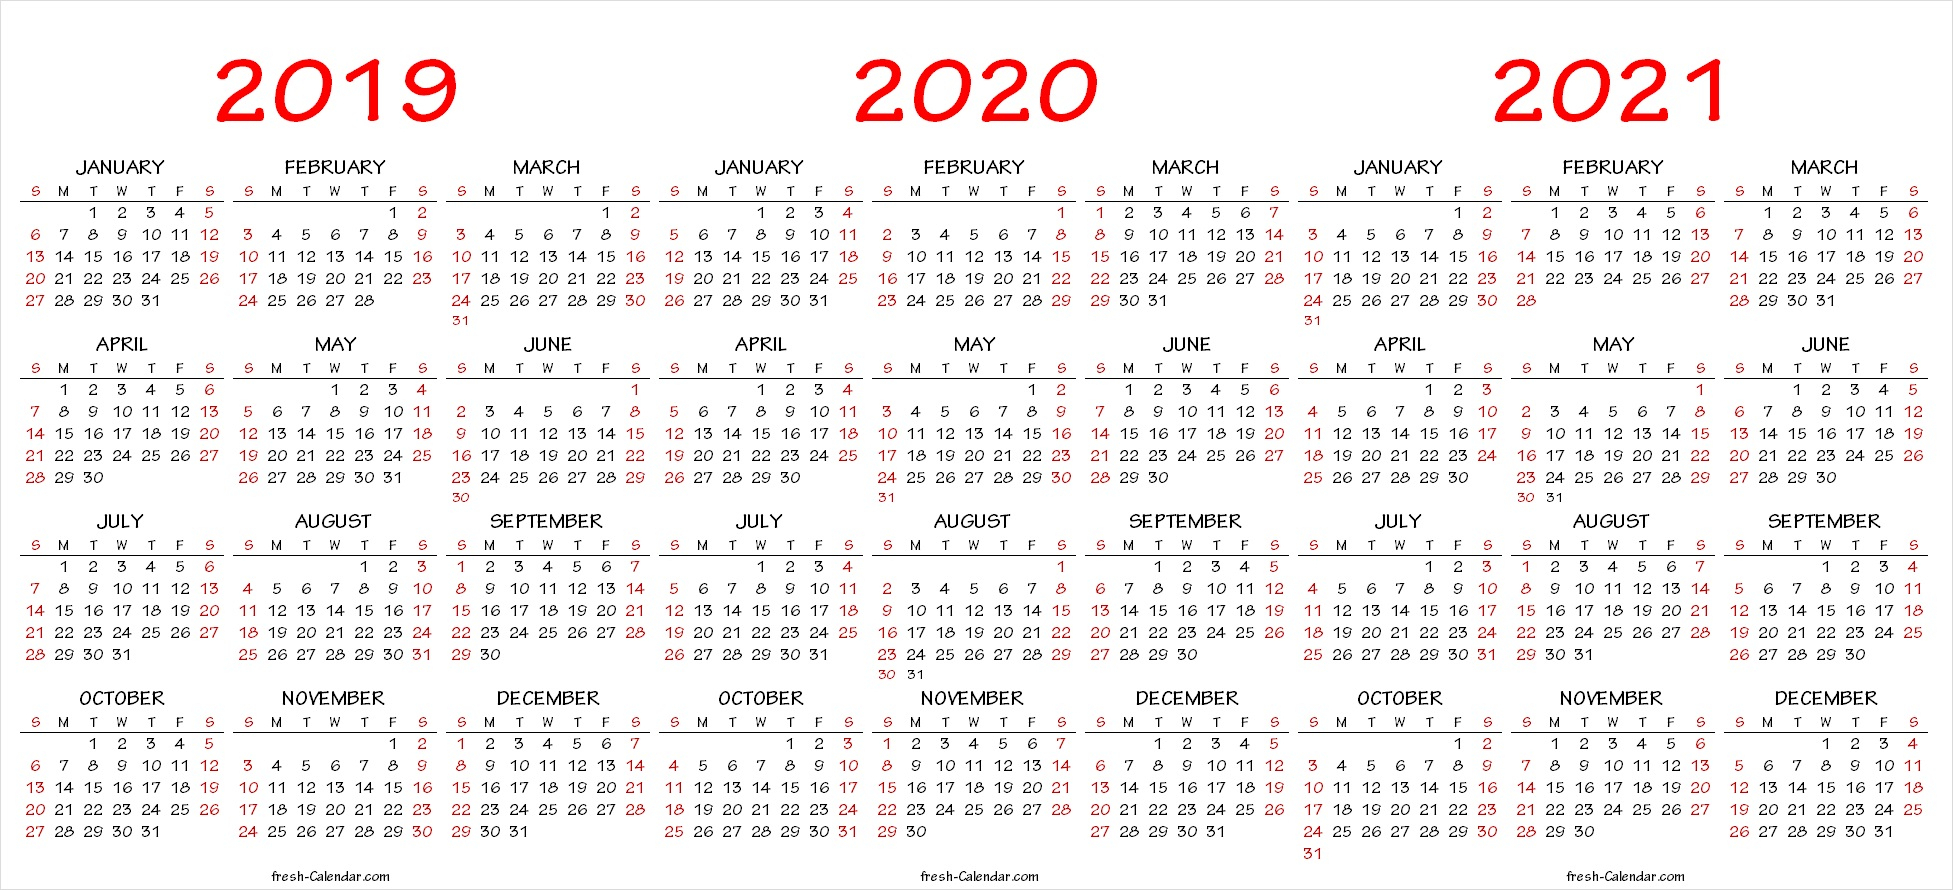 Three Yearly Calendar 2019 2020 2021 Printable Free | Blank Template regarding Free Printable 3 Year Calendar 2019 2020 2021